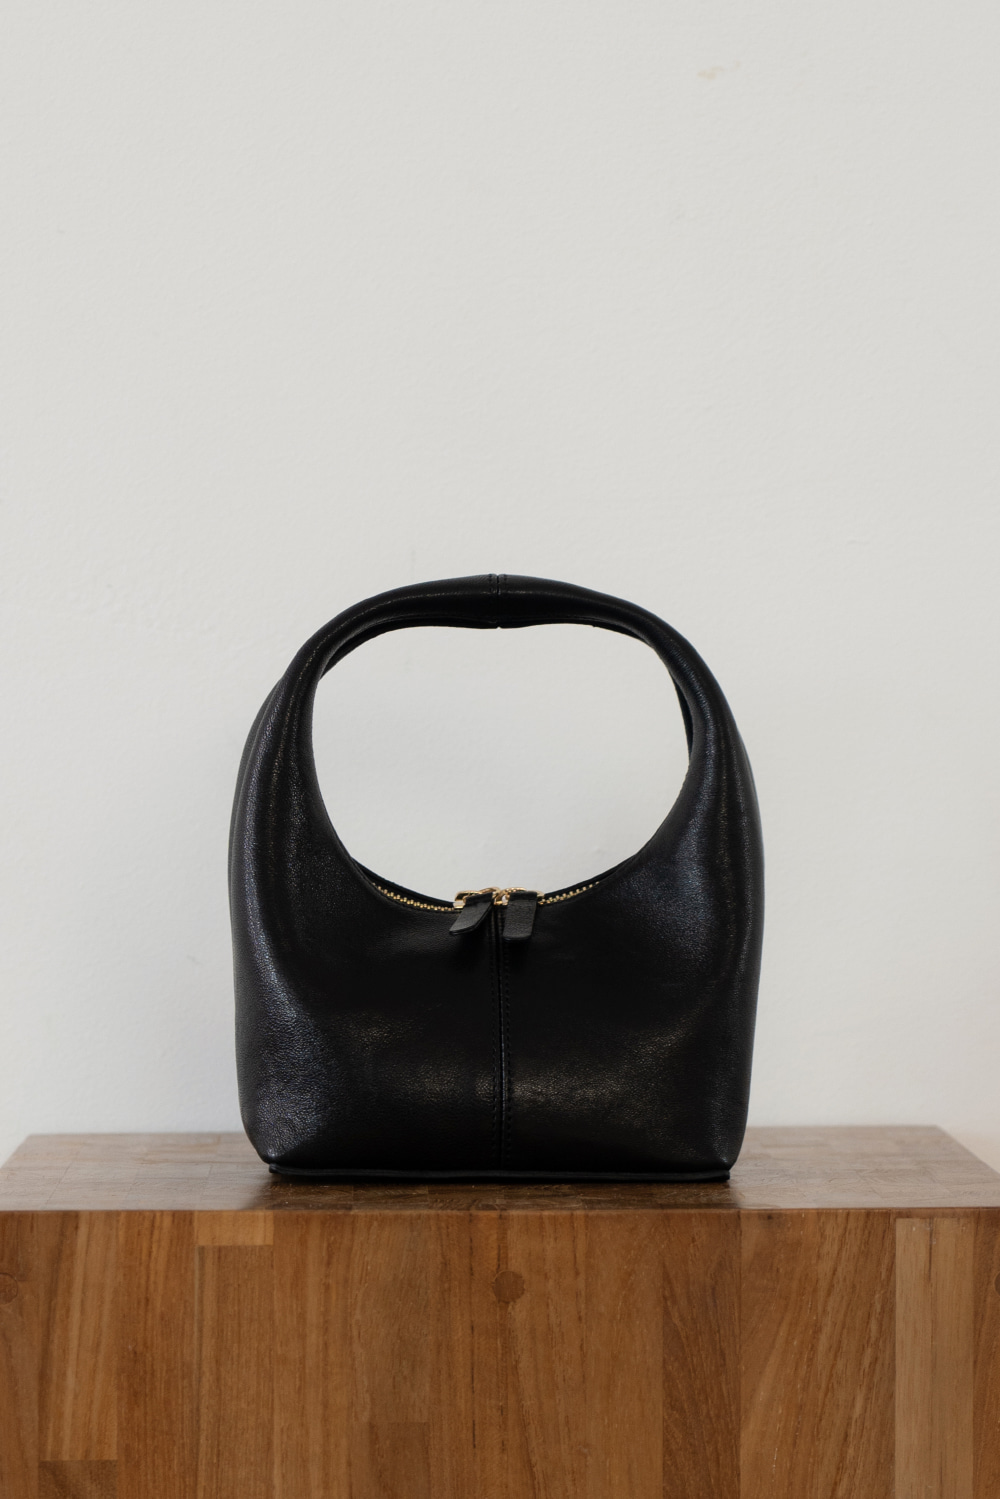 8187_French Mini Bag